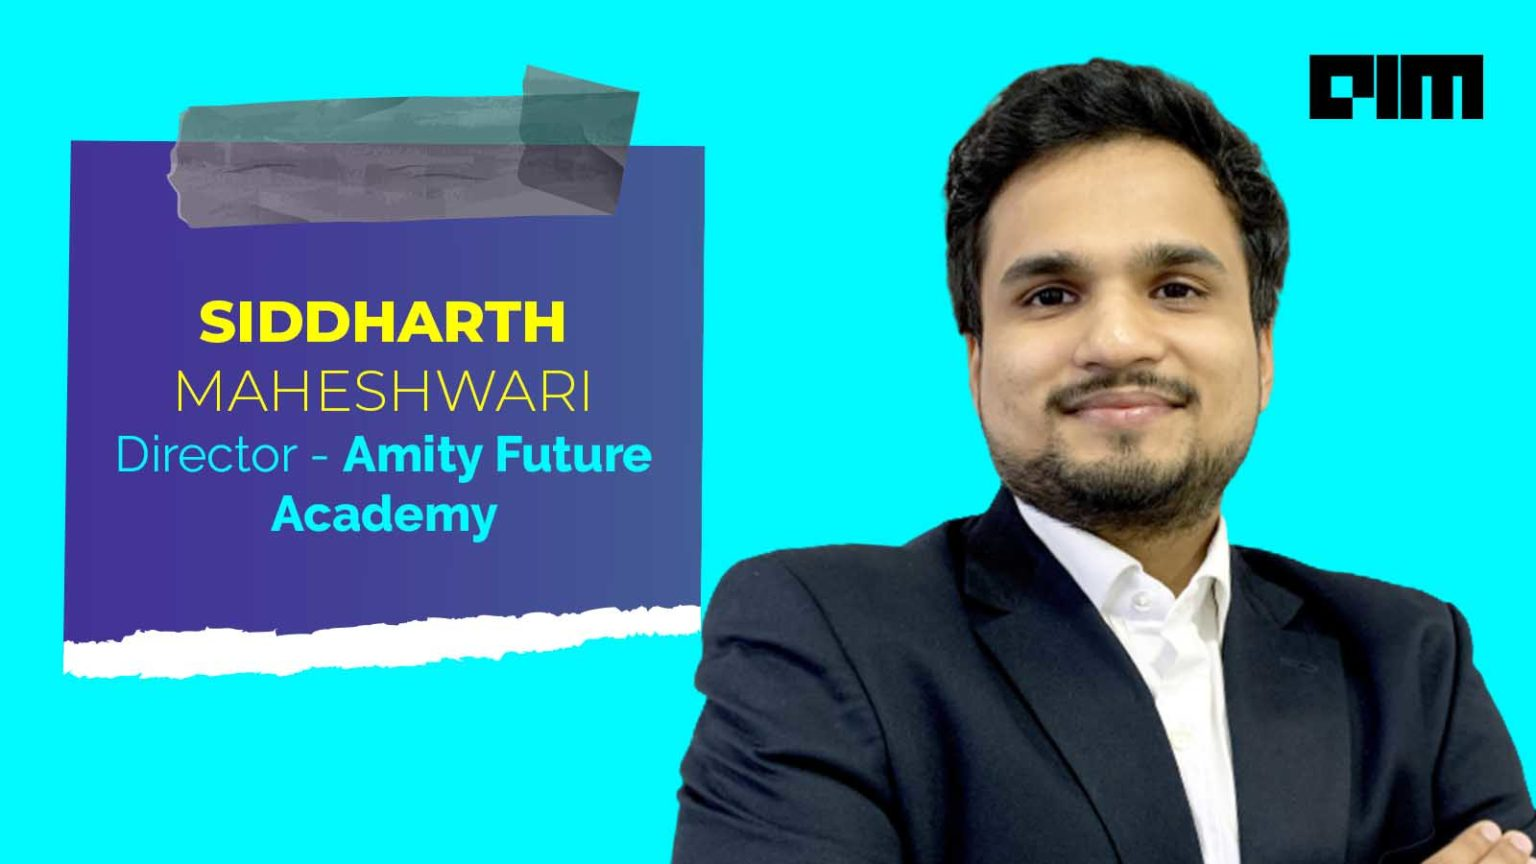 Lack Of Awareness Is The Biggest Barrier To Data Science Education In India: Director, Amity Future Academy